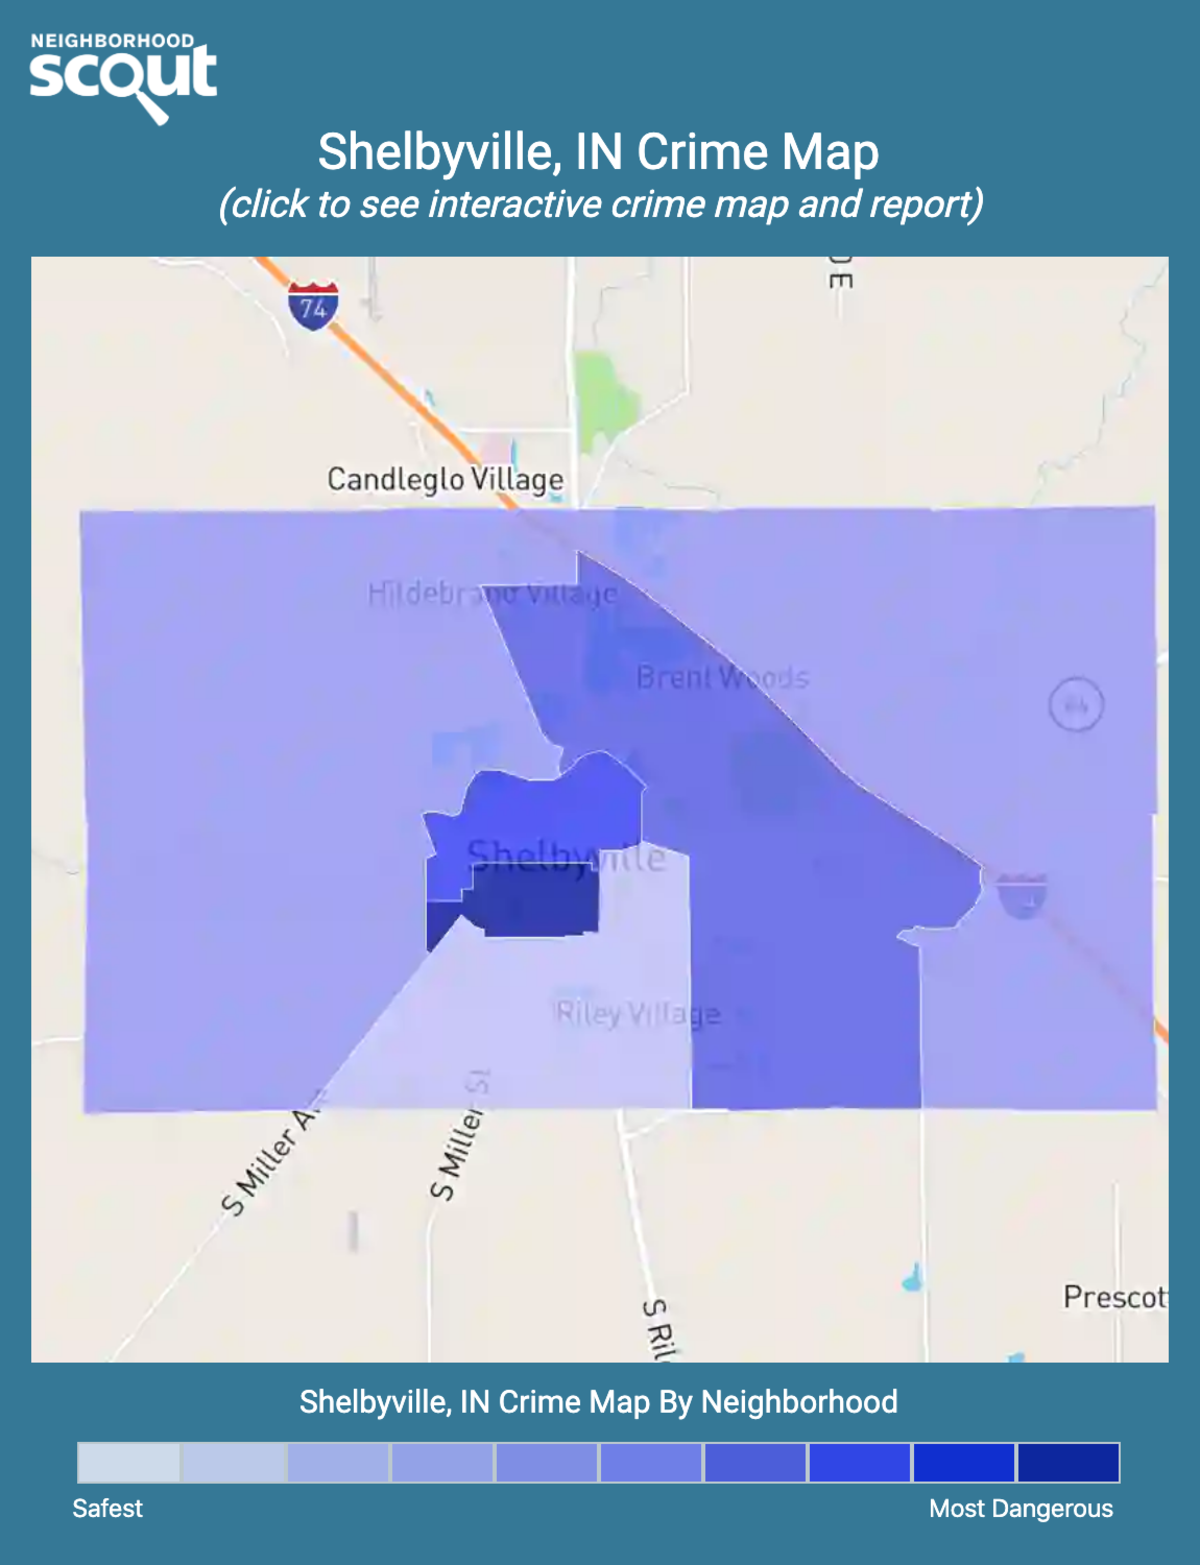 Shelbyville, Indiana crime map